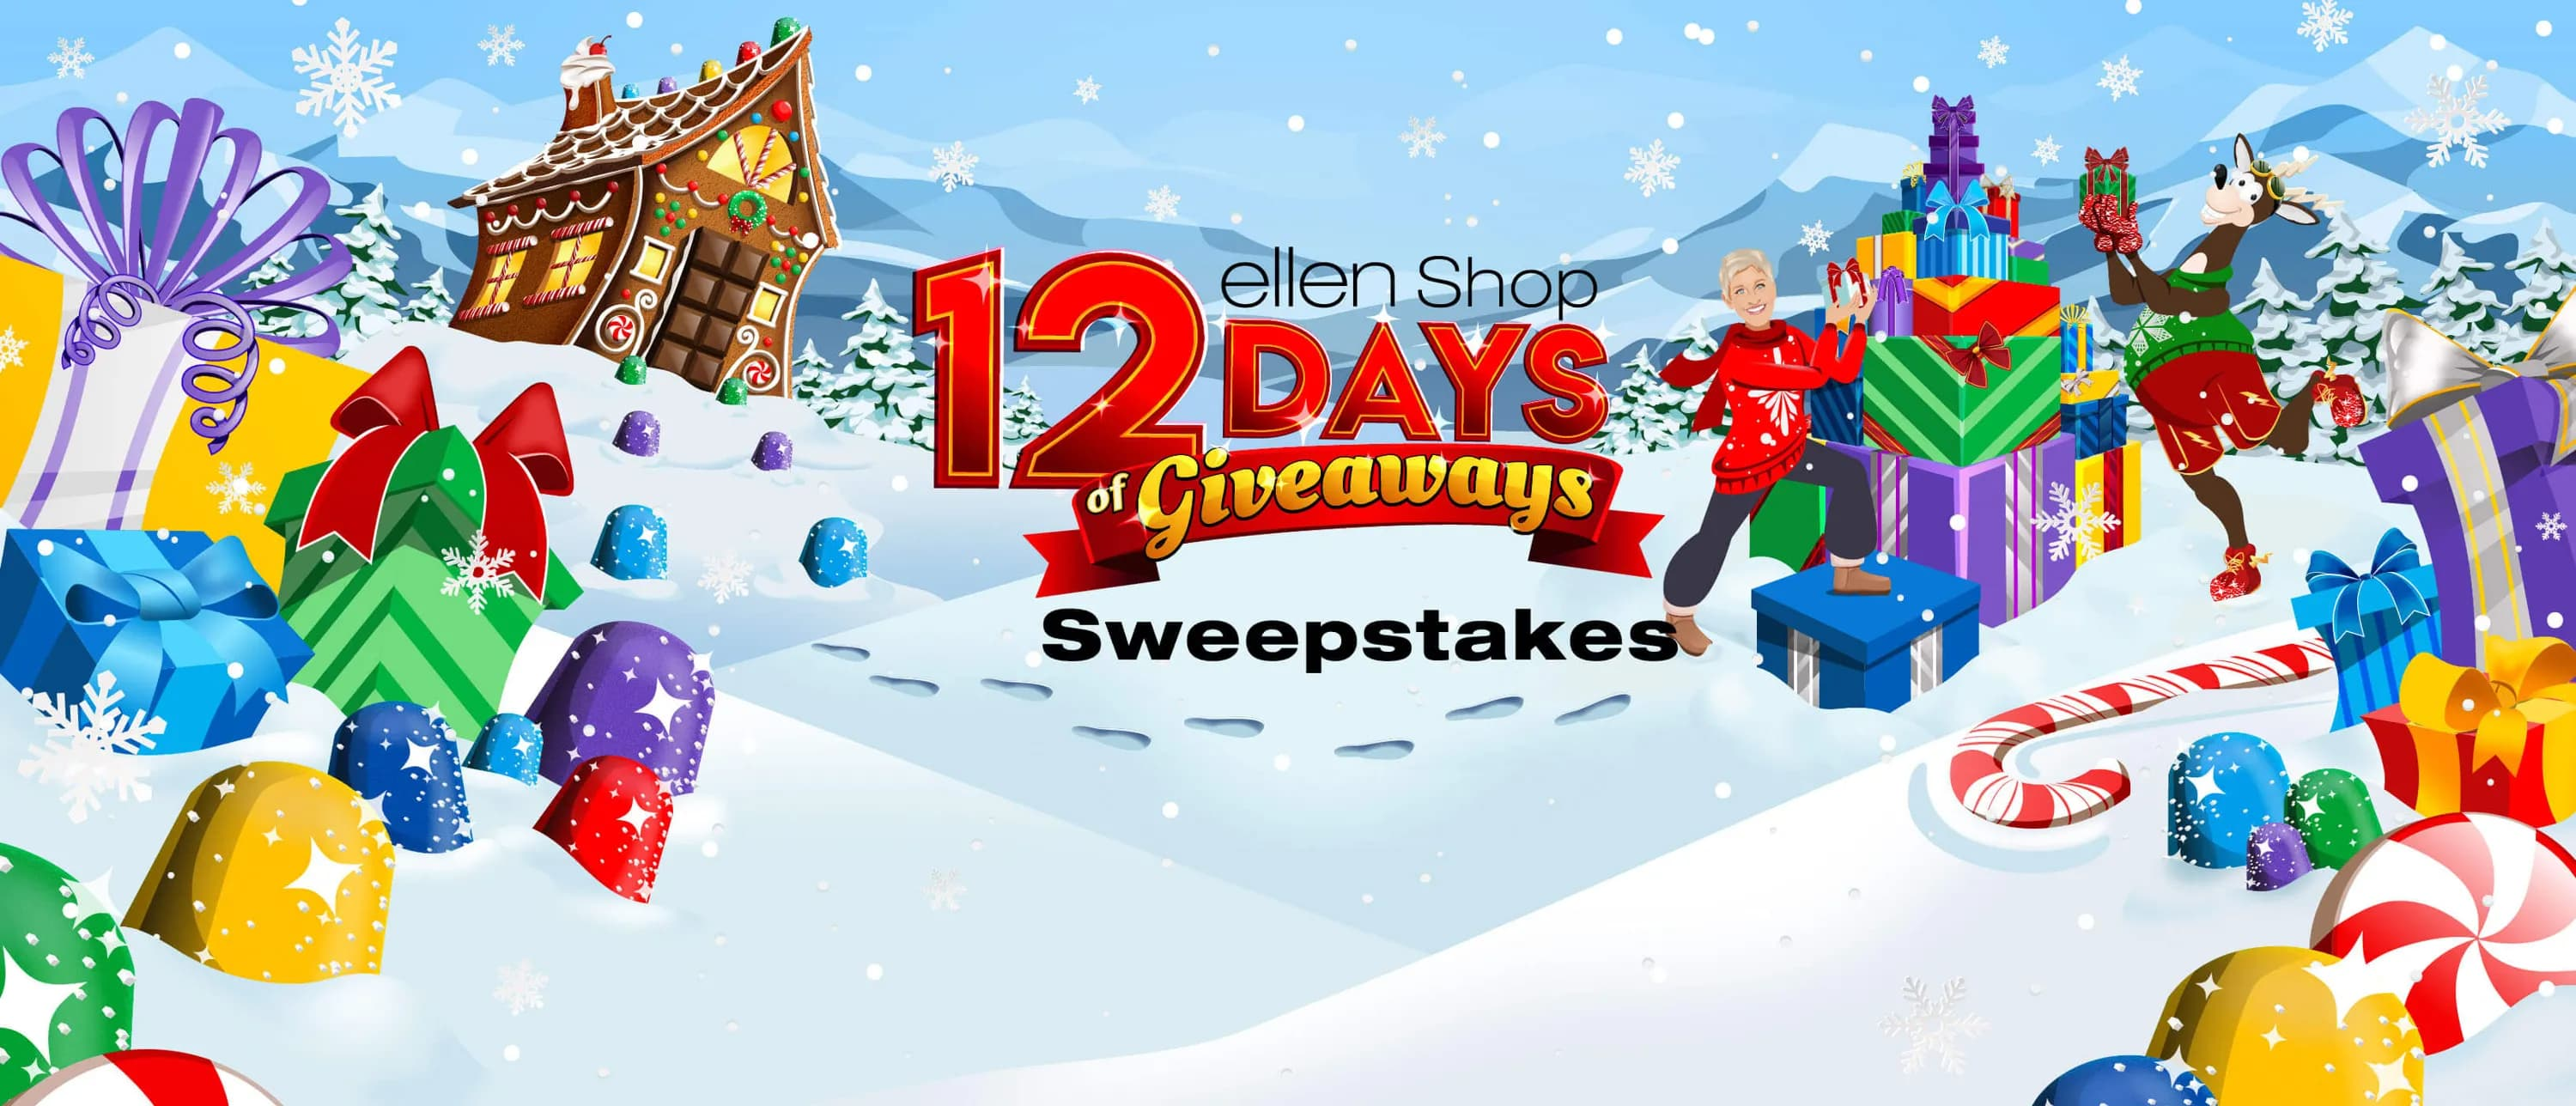 Ellen DeGeneres Shop 12 Days Of Giveaways Sweepstakes